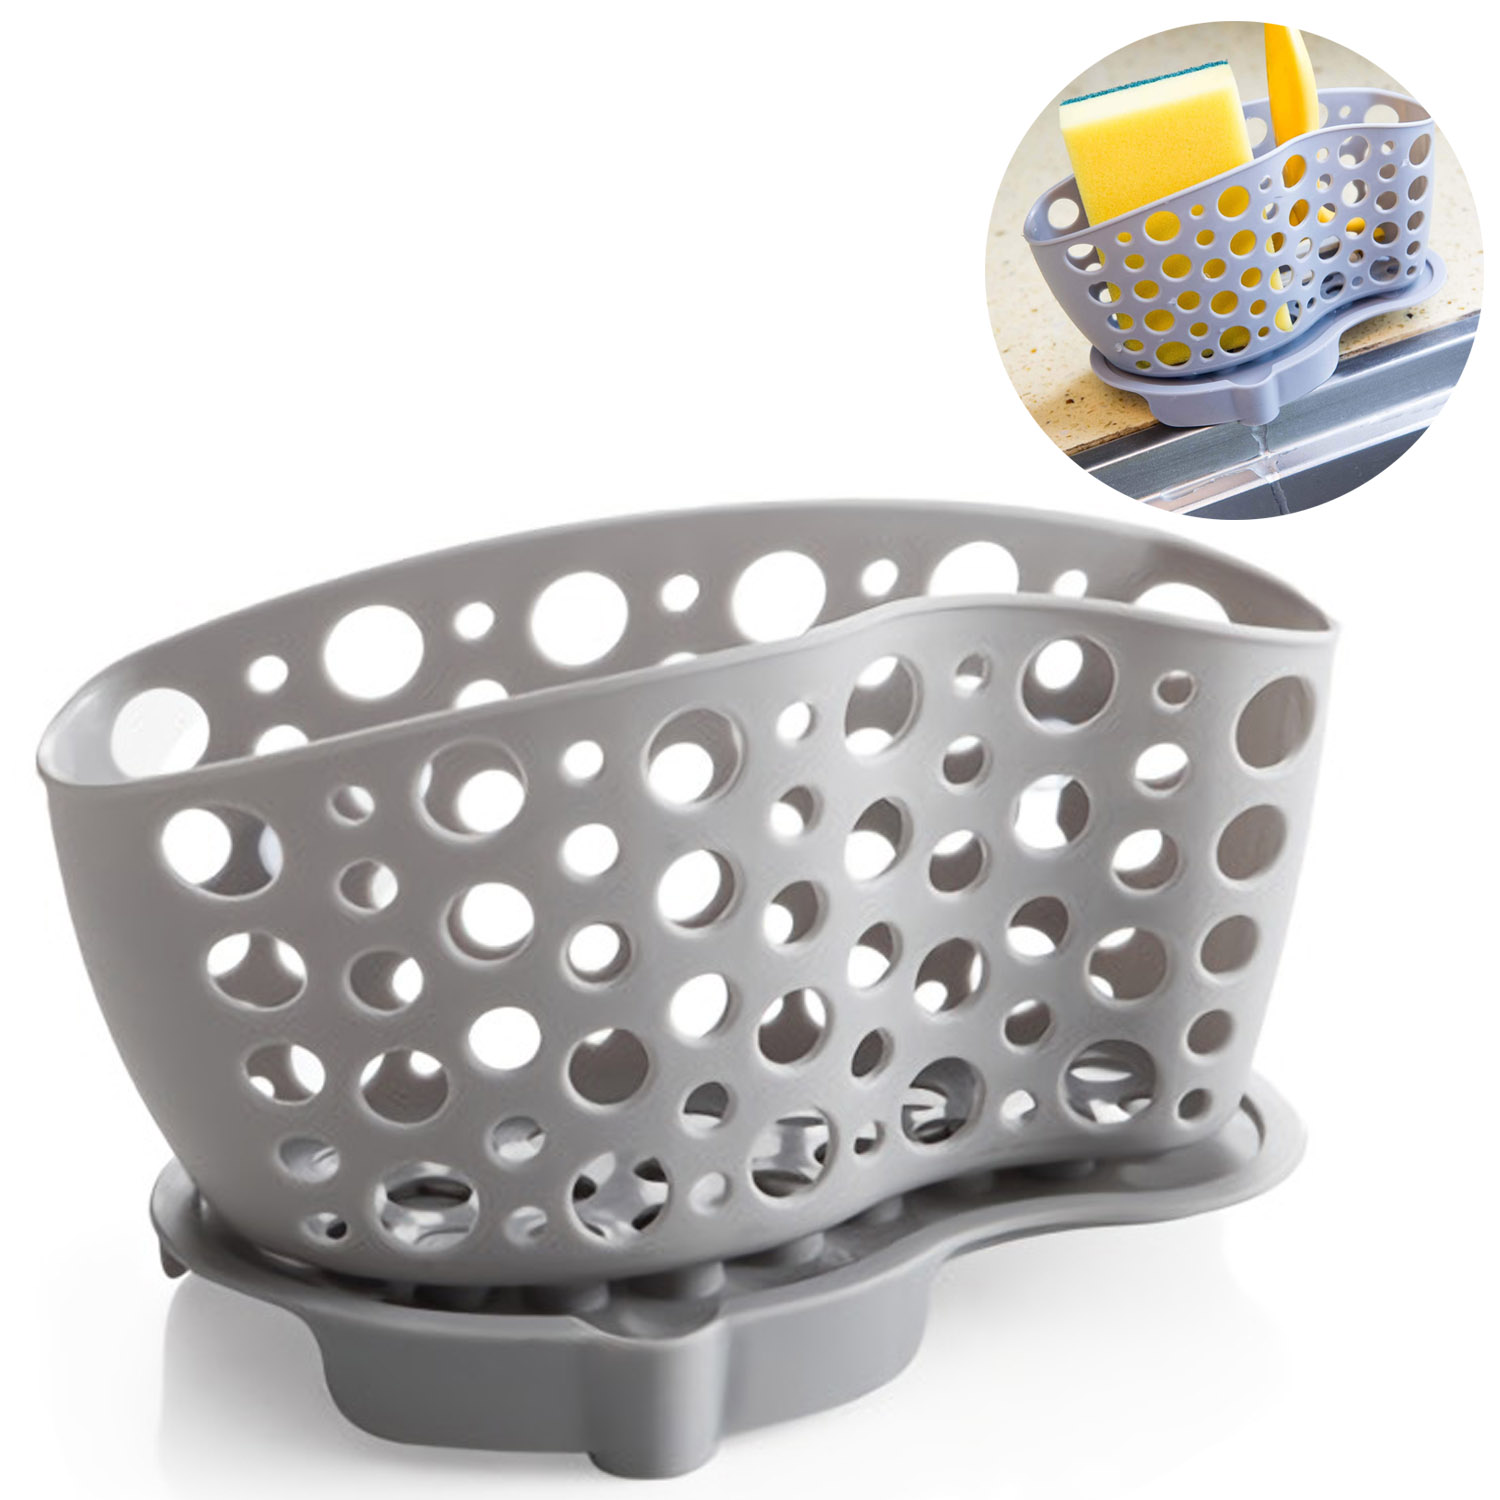 Kitchen Sink Caddy Organizer Sponge Holder Soap Holder Saddle Faucet Caddy (Random Color)